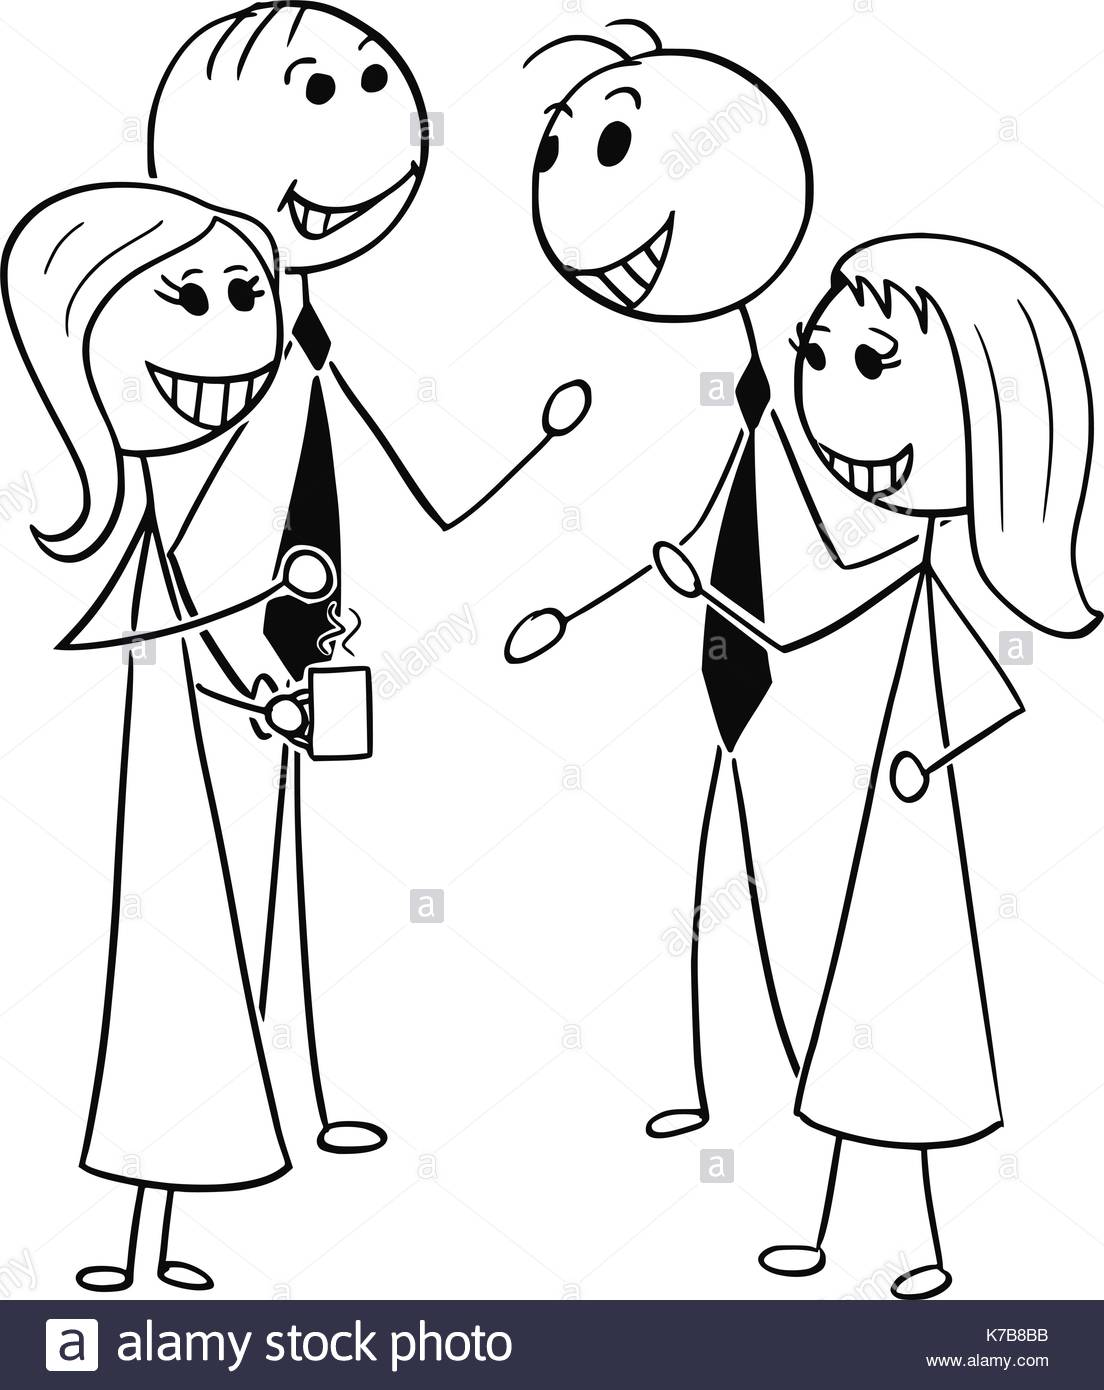 1104x1390 Cartoon Stick Man Illustration Of Two Men And Women Pairs Business